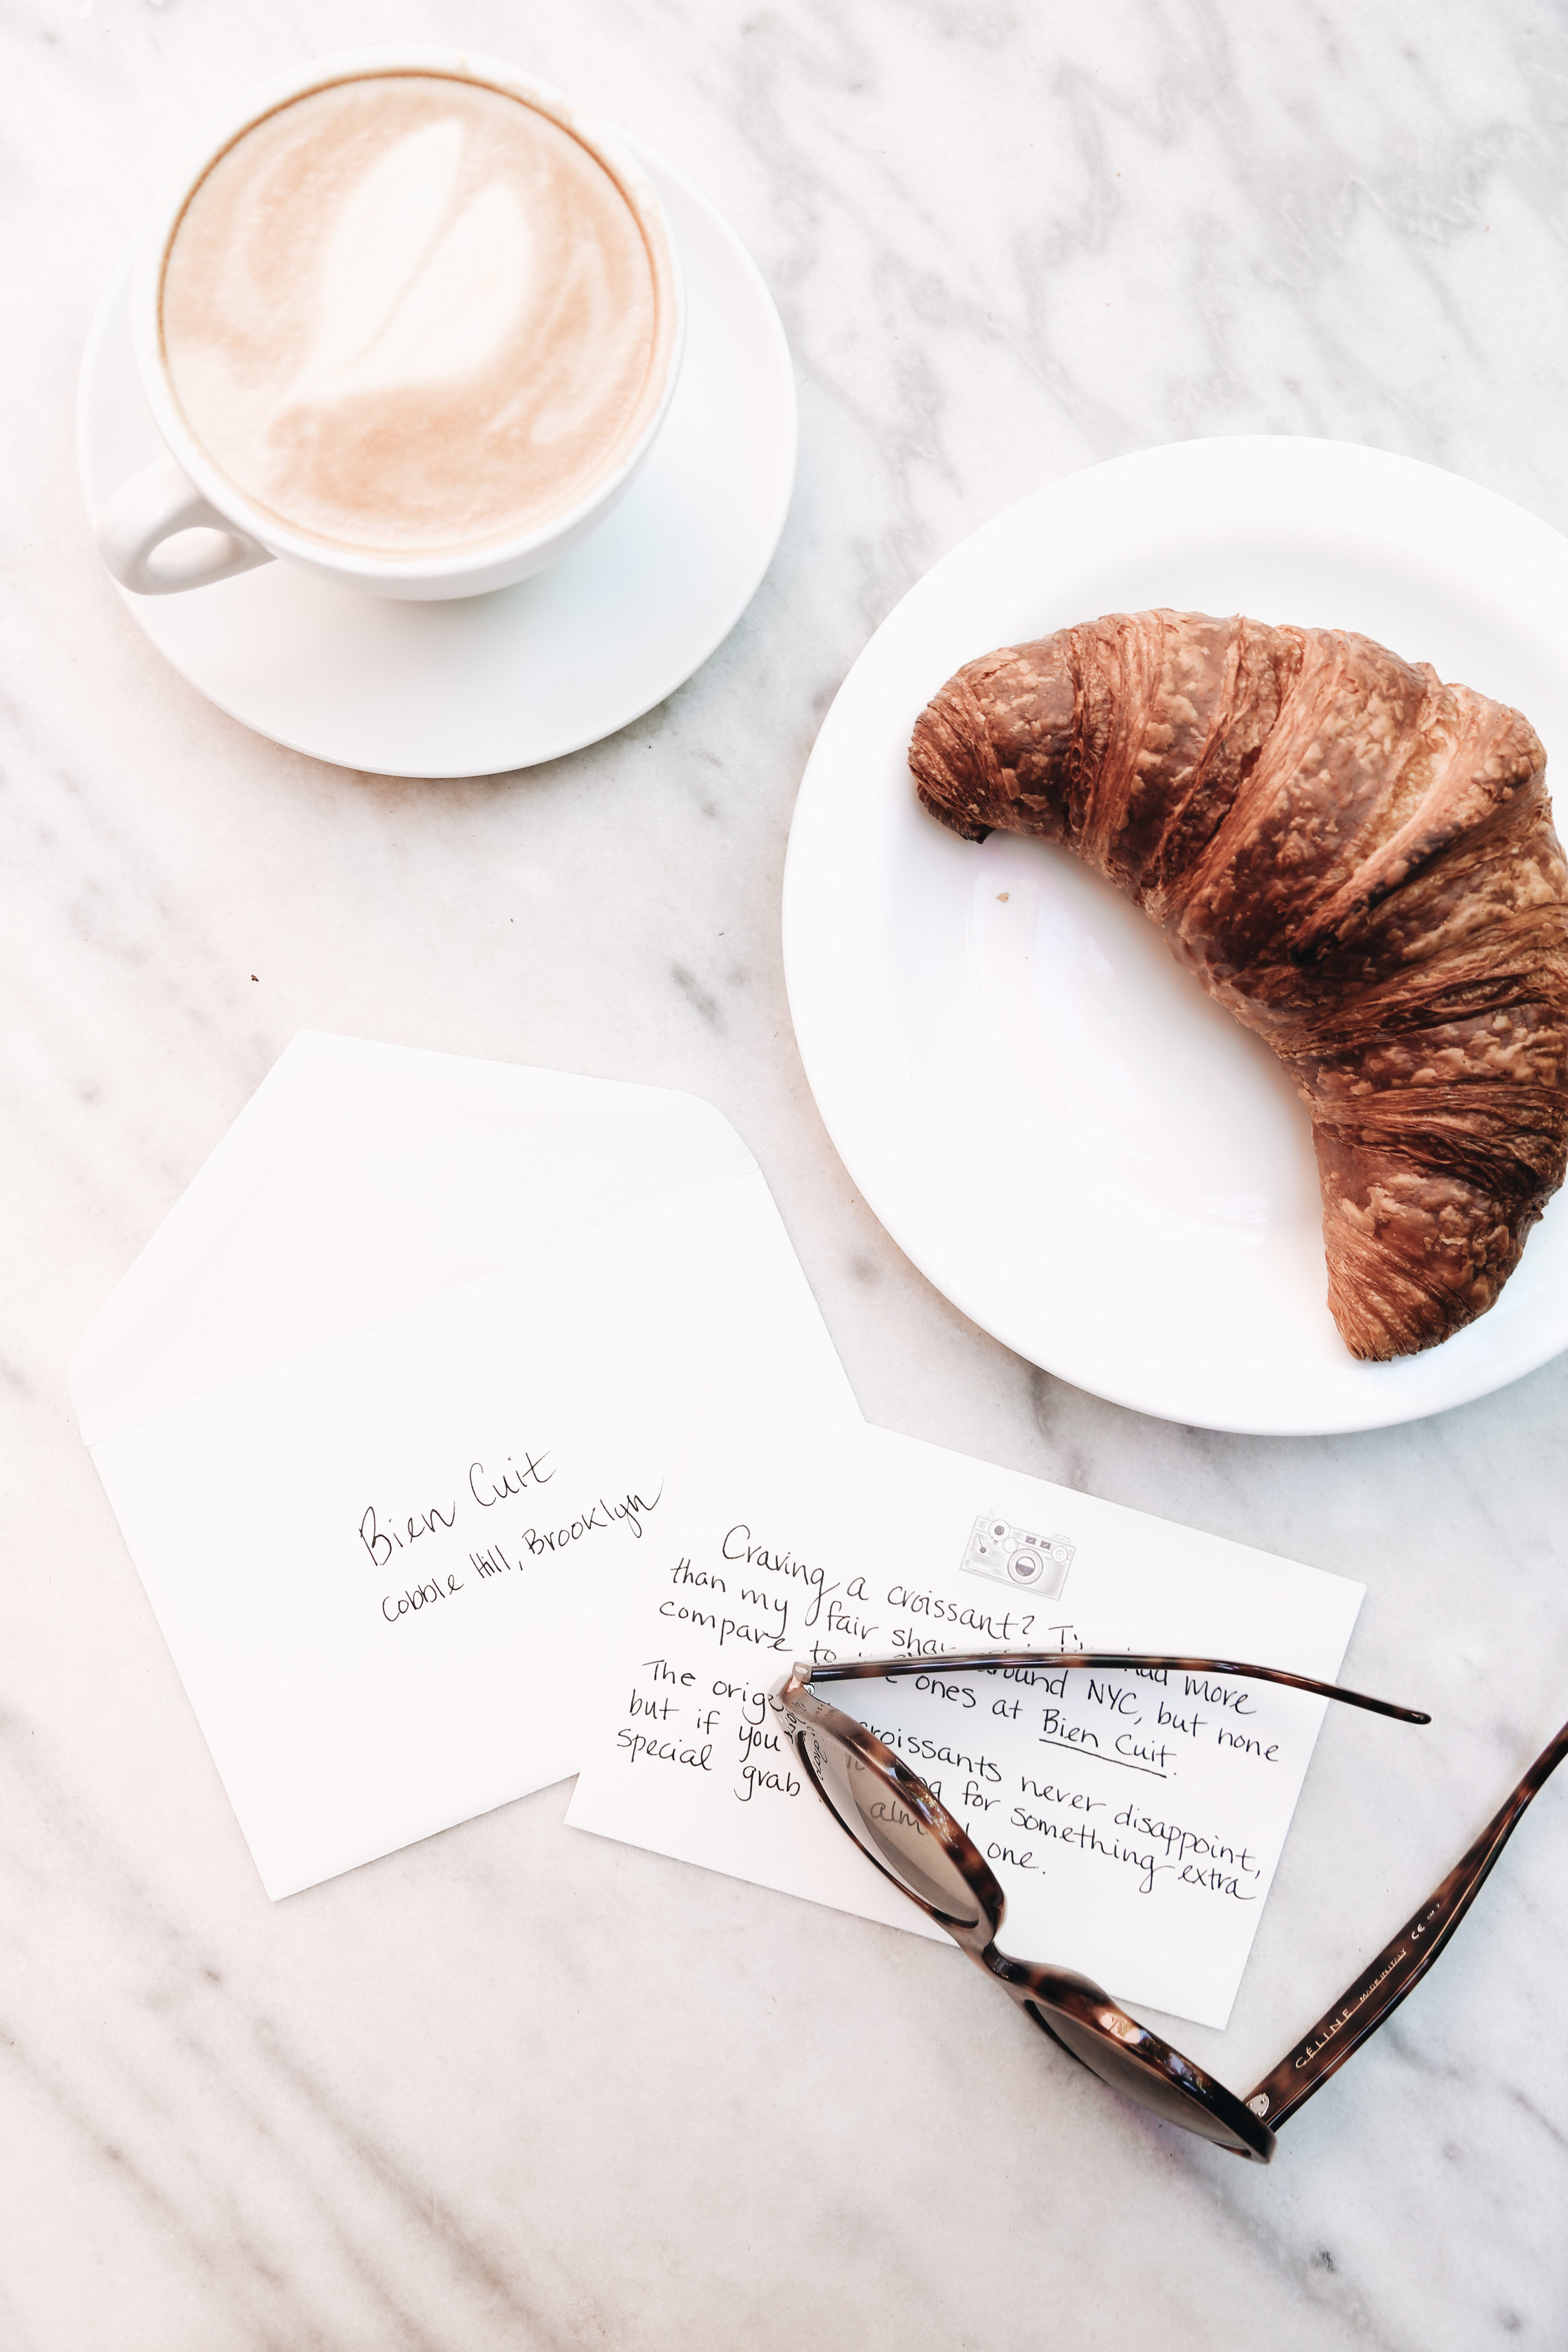 A Croissant so Good You'll Think You're in France - (Bien Cuit, Cobble Hill)